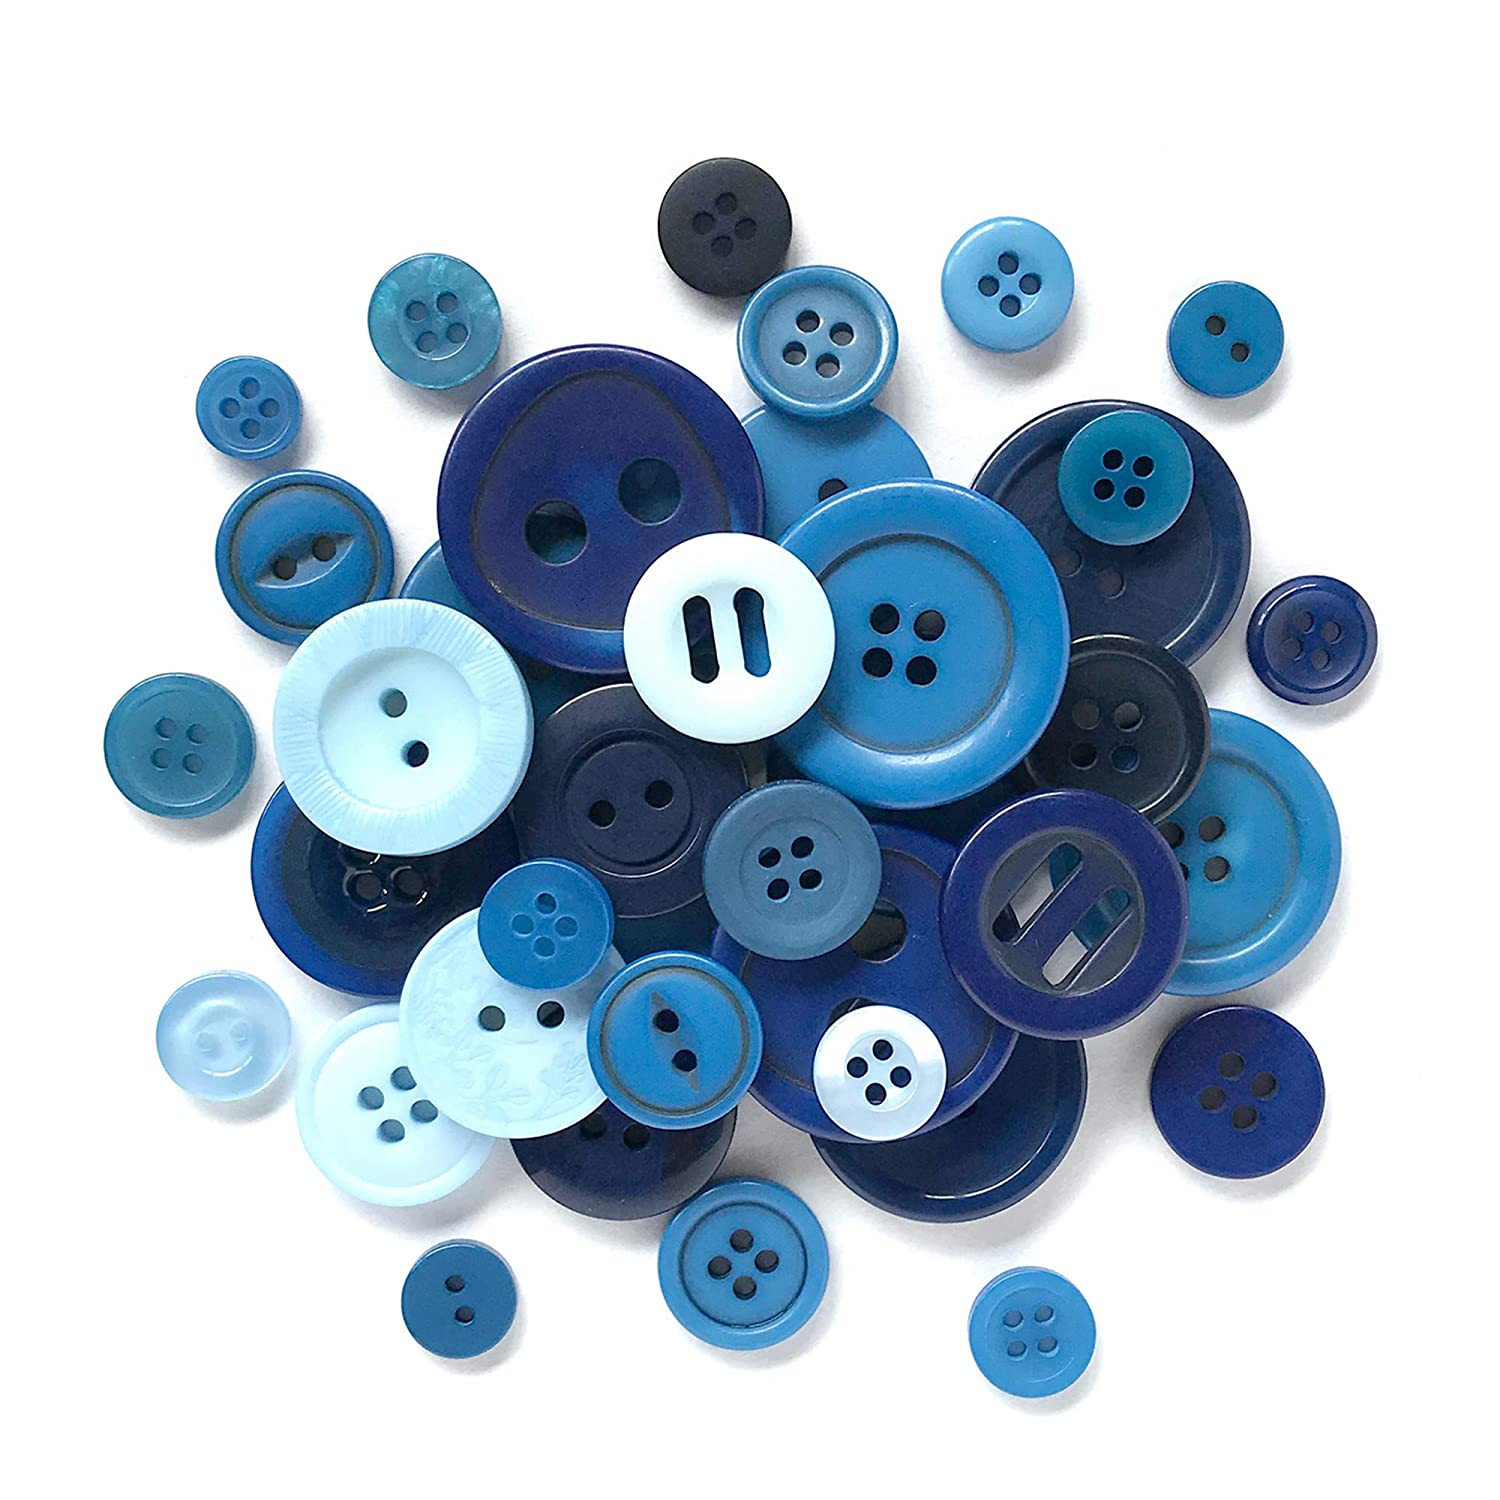 Turquoise Resin Round Buttons 20mm Sew On 4 Holes 20 Pcs Sewing Jewellery Making